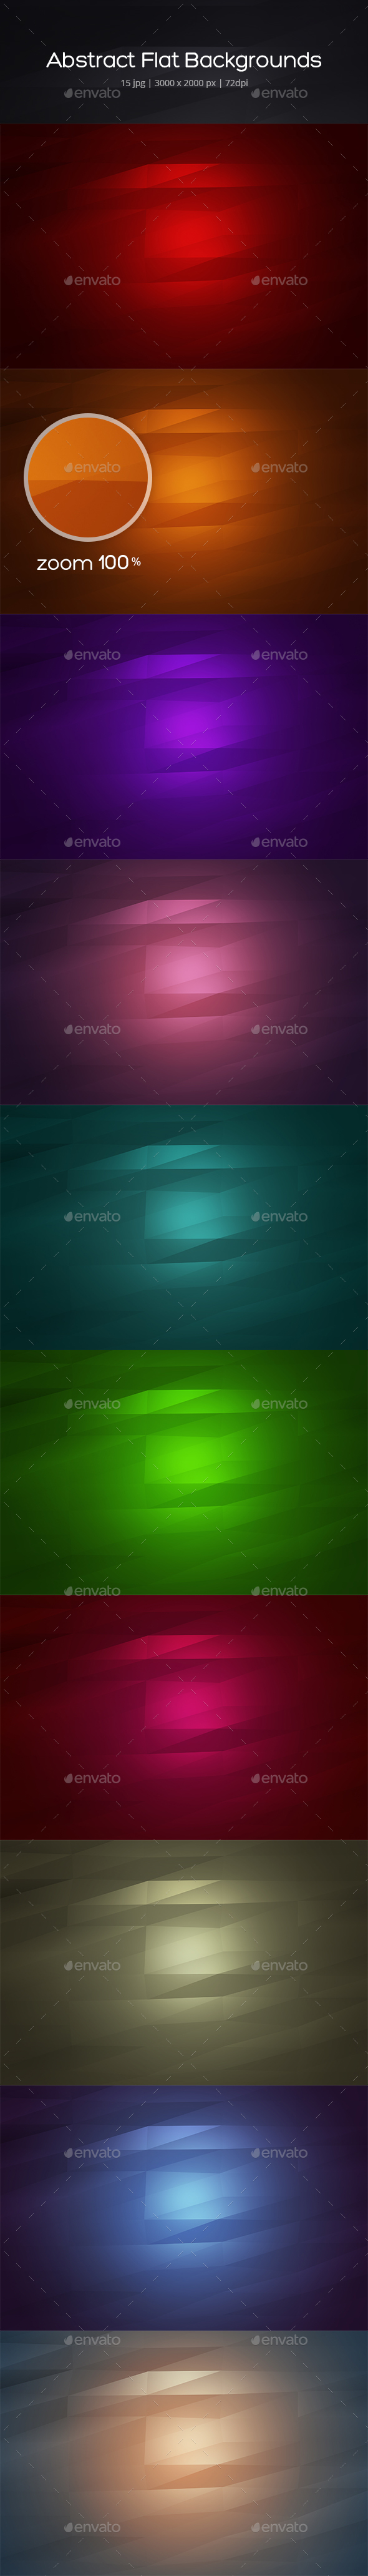 Abstract Flat Backgrounds - Backgrounds Graphics